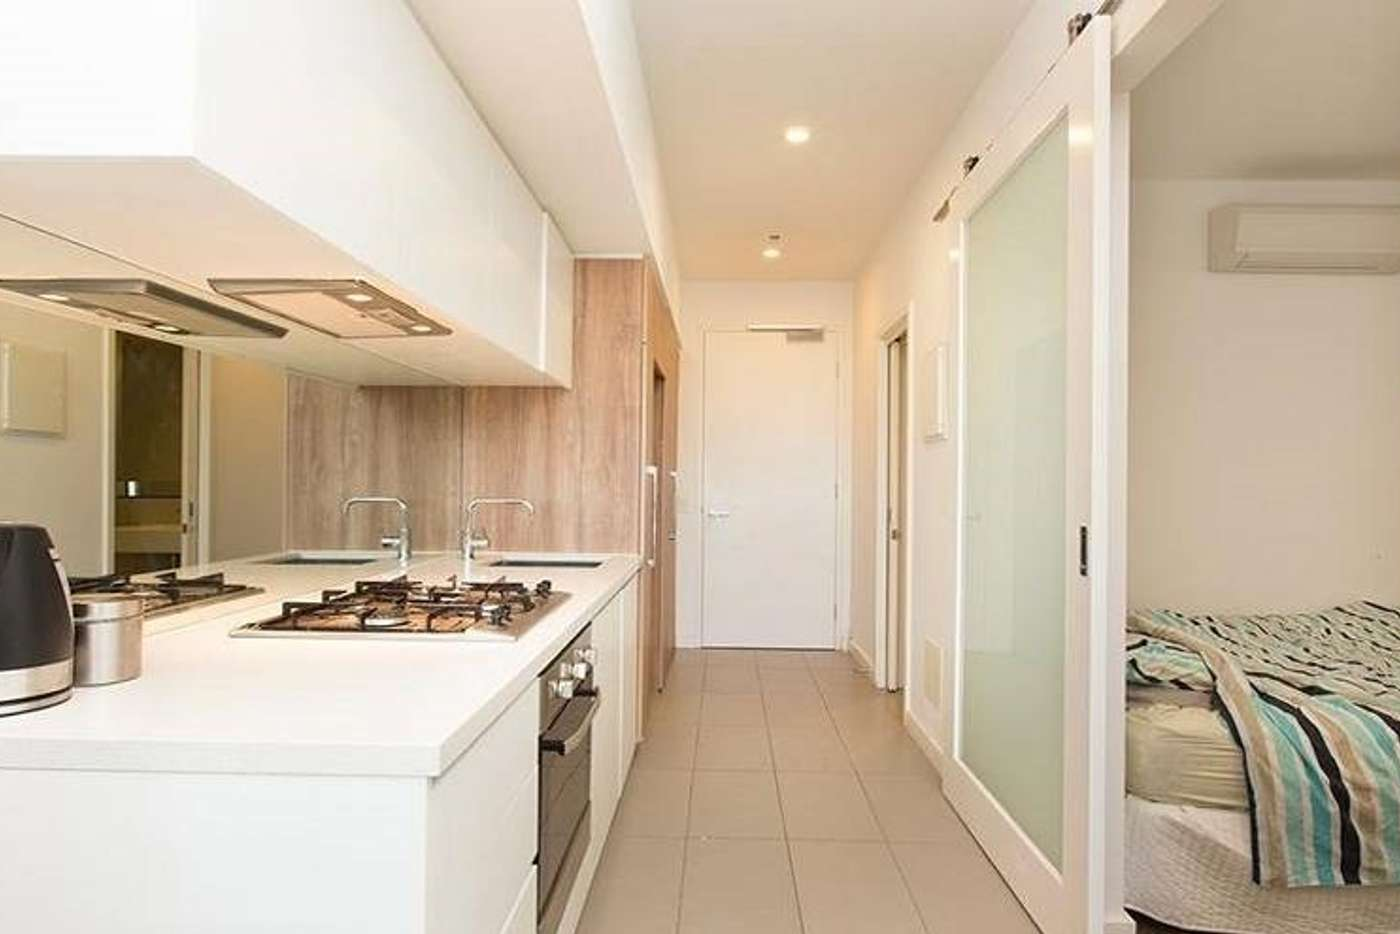 Seventh view of Homely apartment listing, 401/35 Malcolm Street, South Yarra VIC 3141